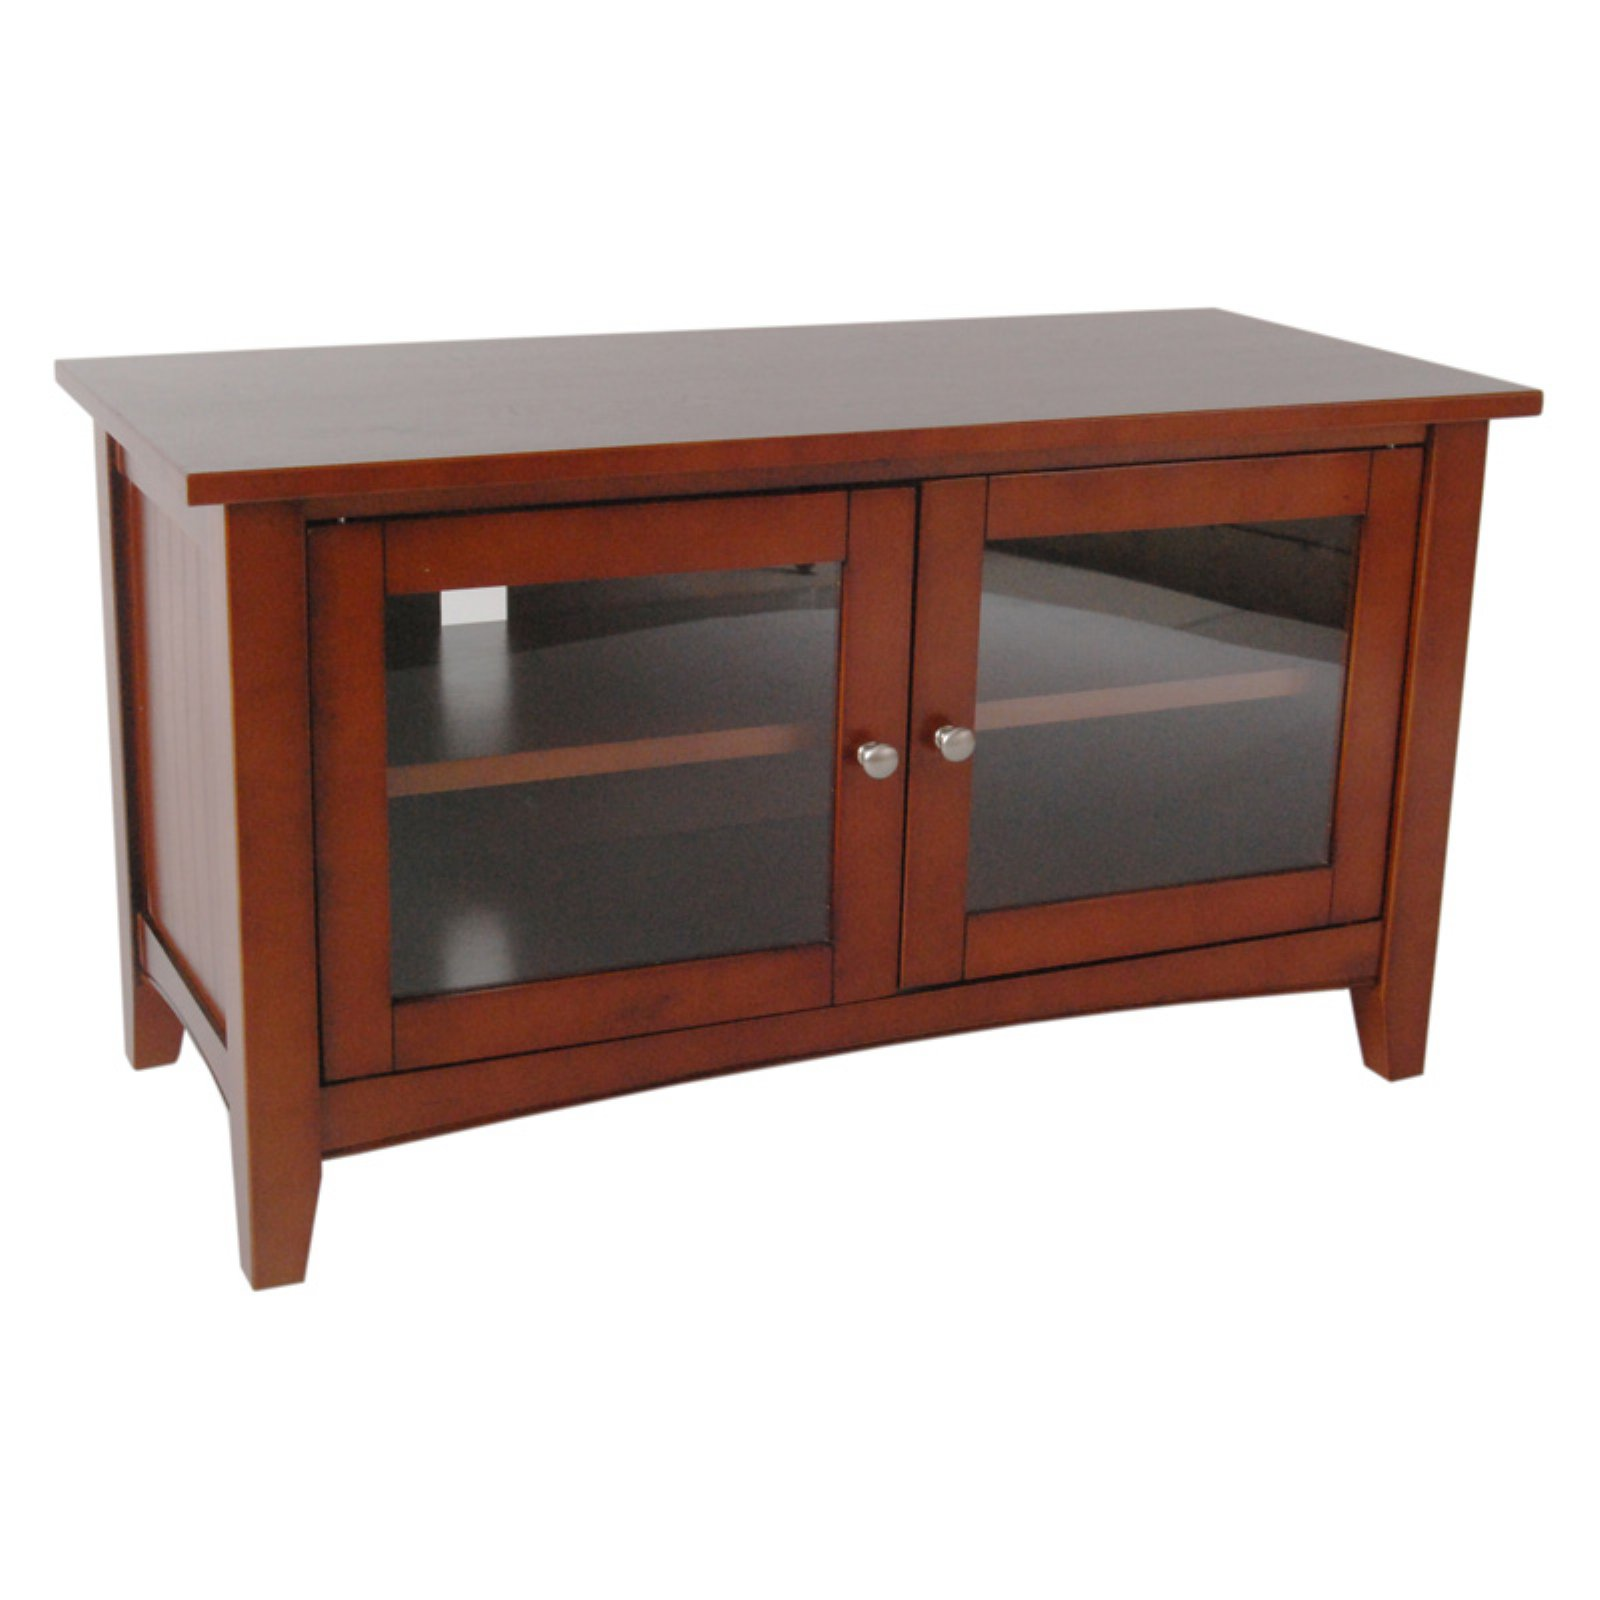 "Alaterre Shaker Cottage 36"" TV Stand"